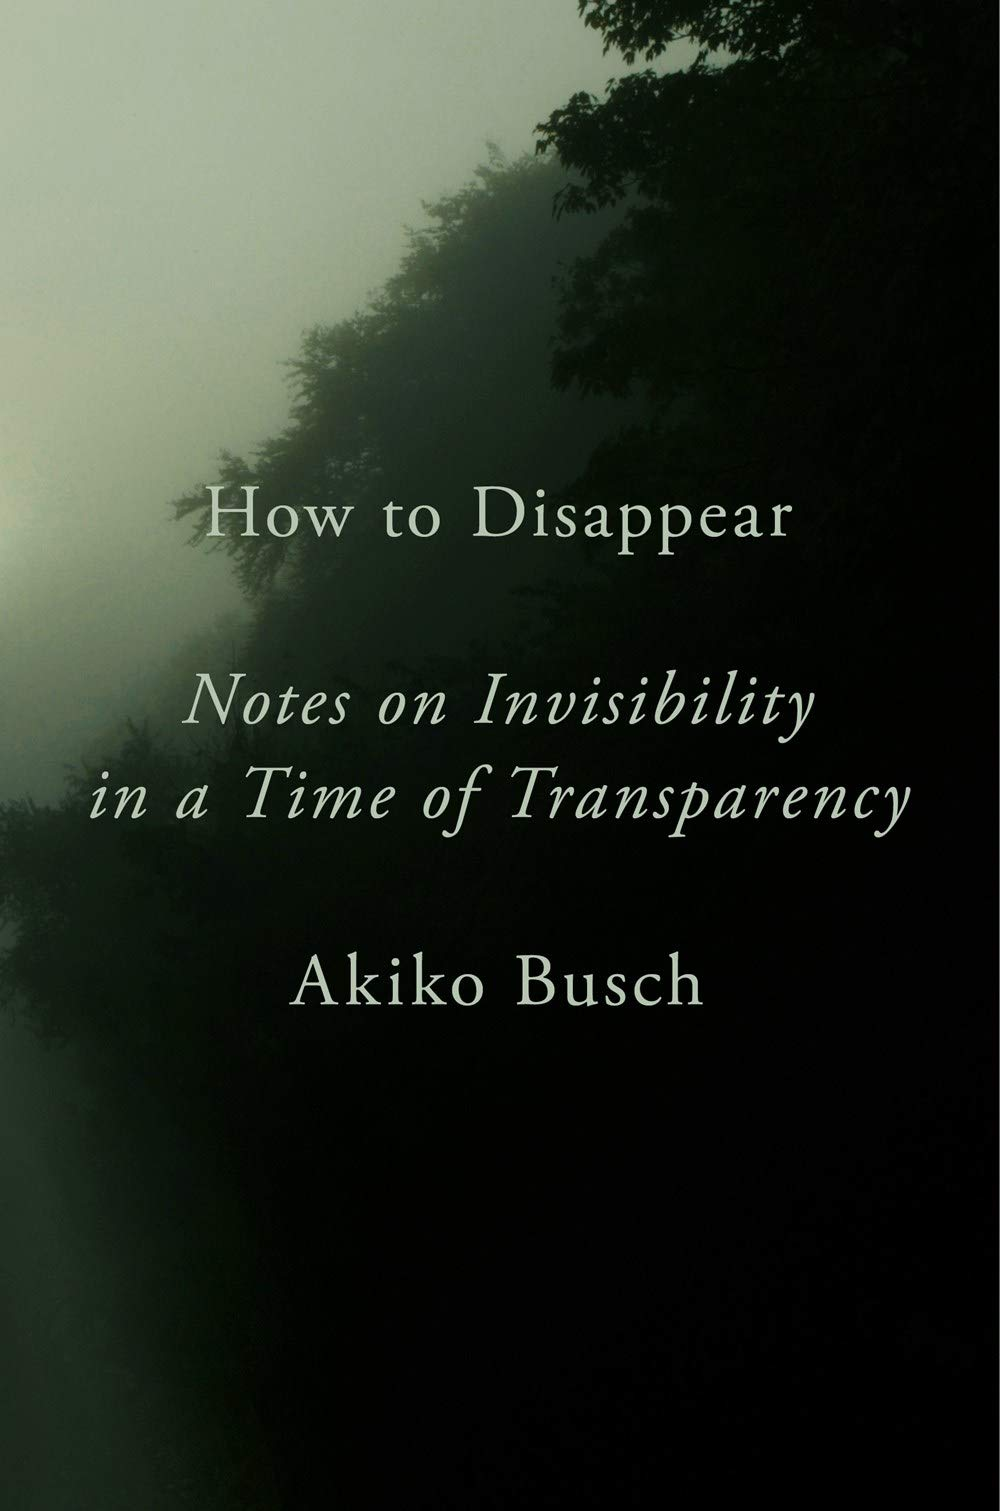 How to Disappear: Notes on Invisibility in a Time of Transparency: Busch,  Akiko: 9781101980415: Amazon.com: Books